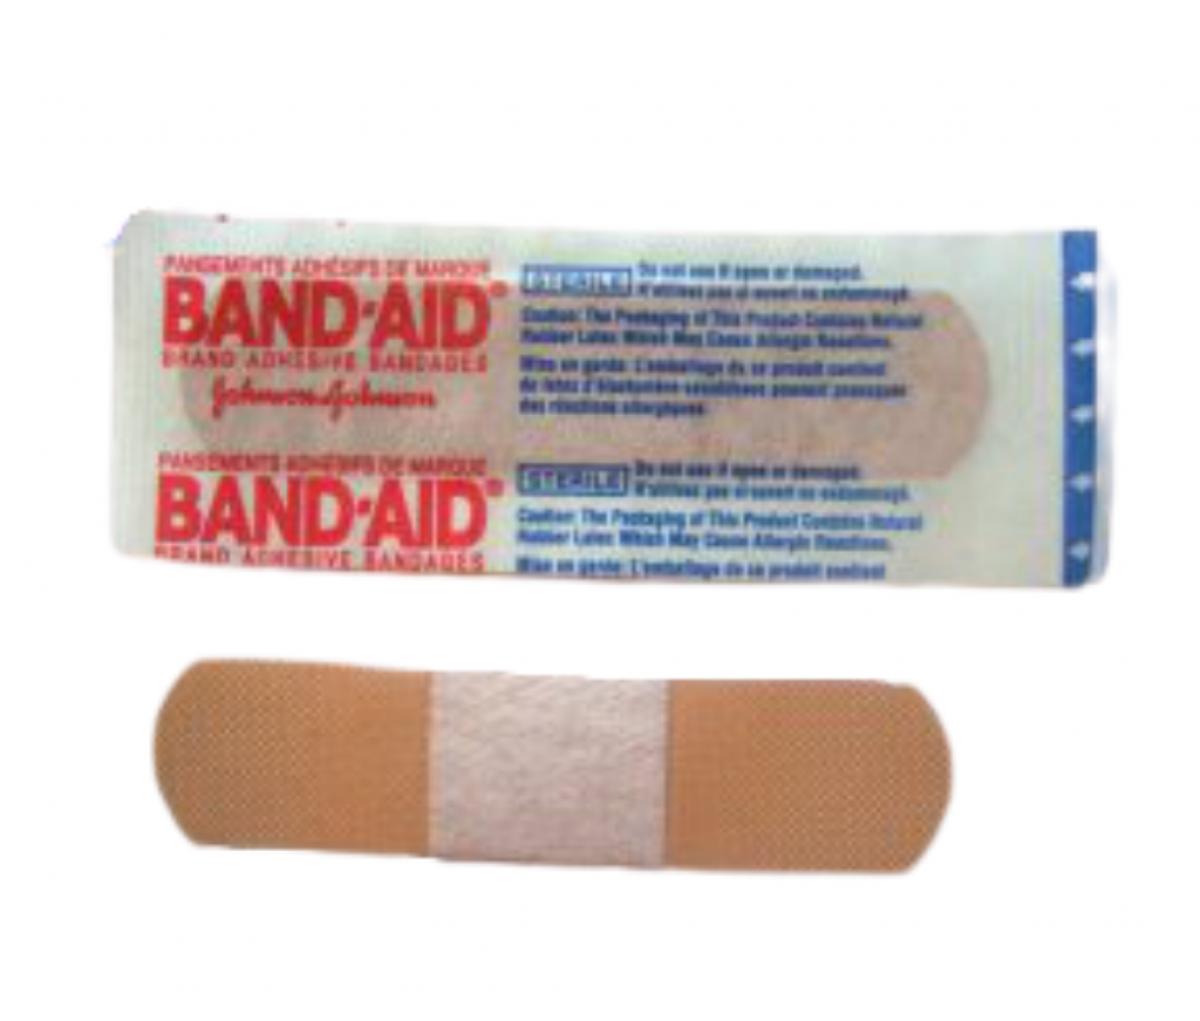 Band Aid 1st Aid Plasters